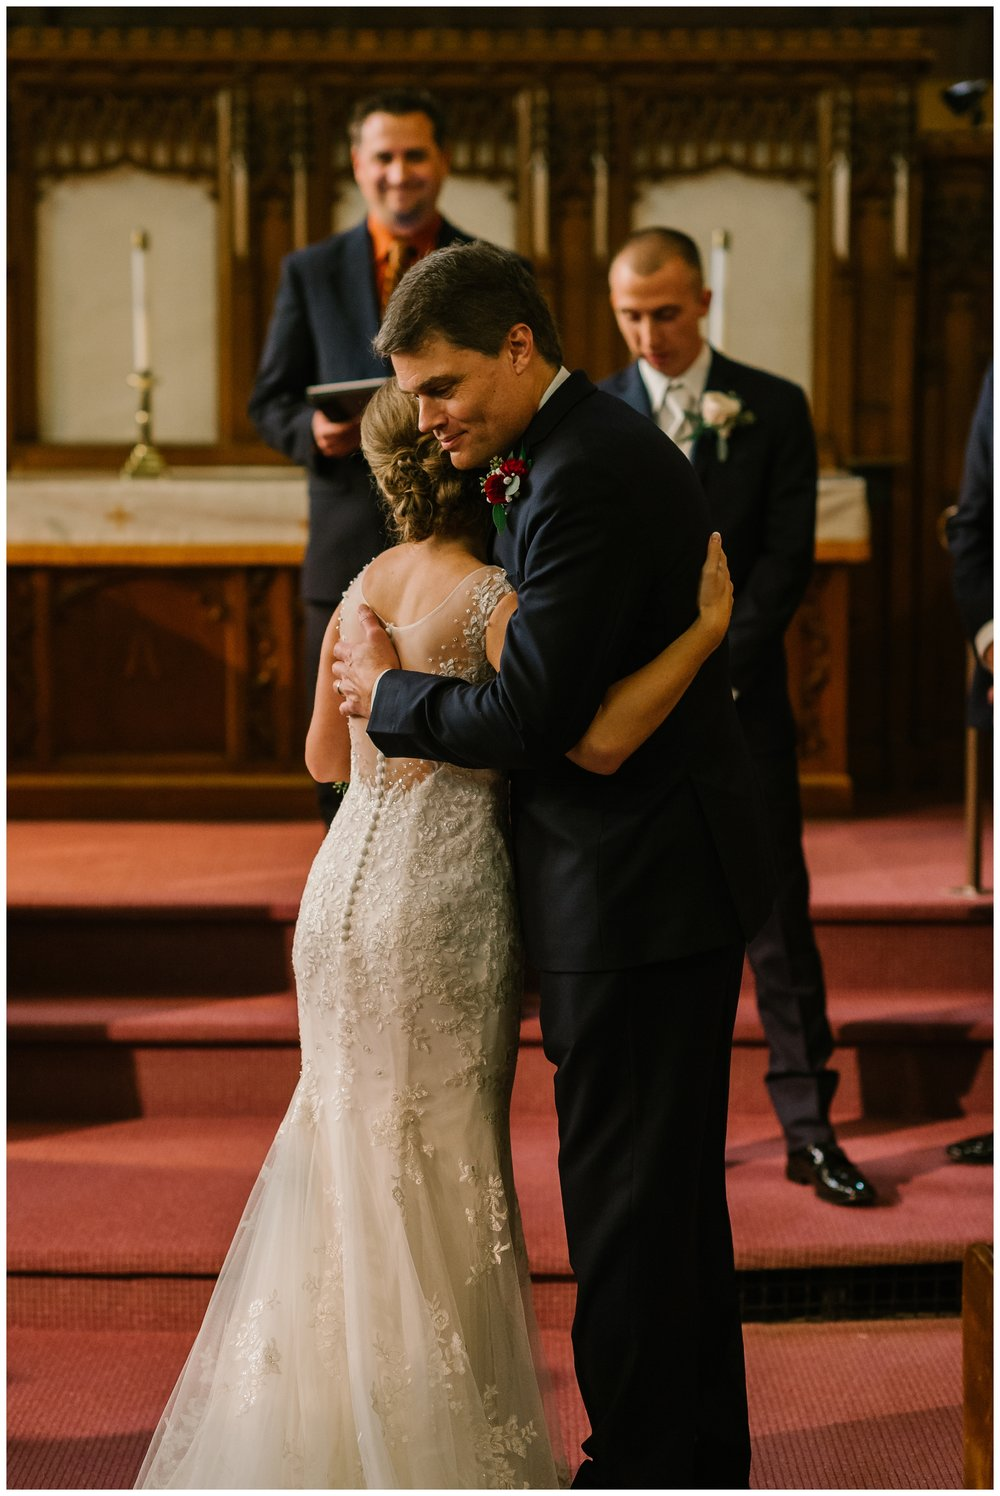 Rebecca_Shehorn_Photography_Indianapolis_Wedding_Photographer_7600.jpg